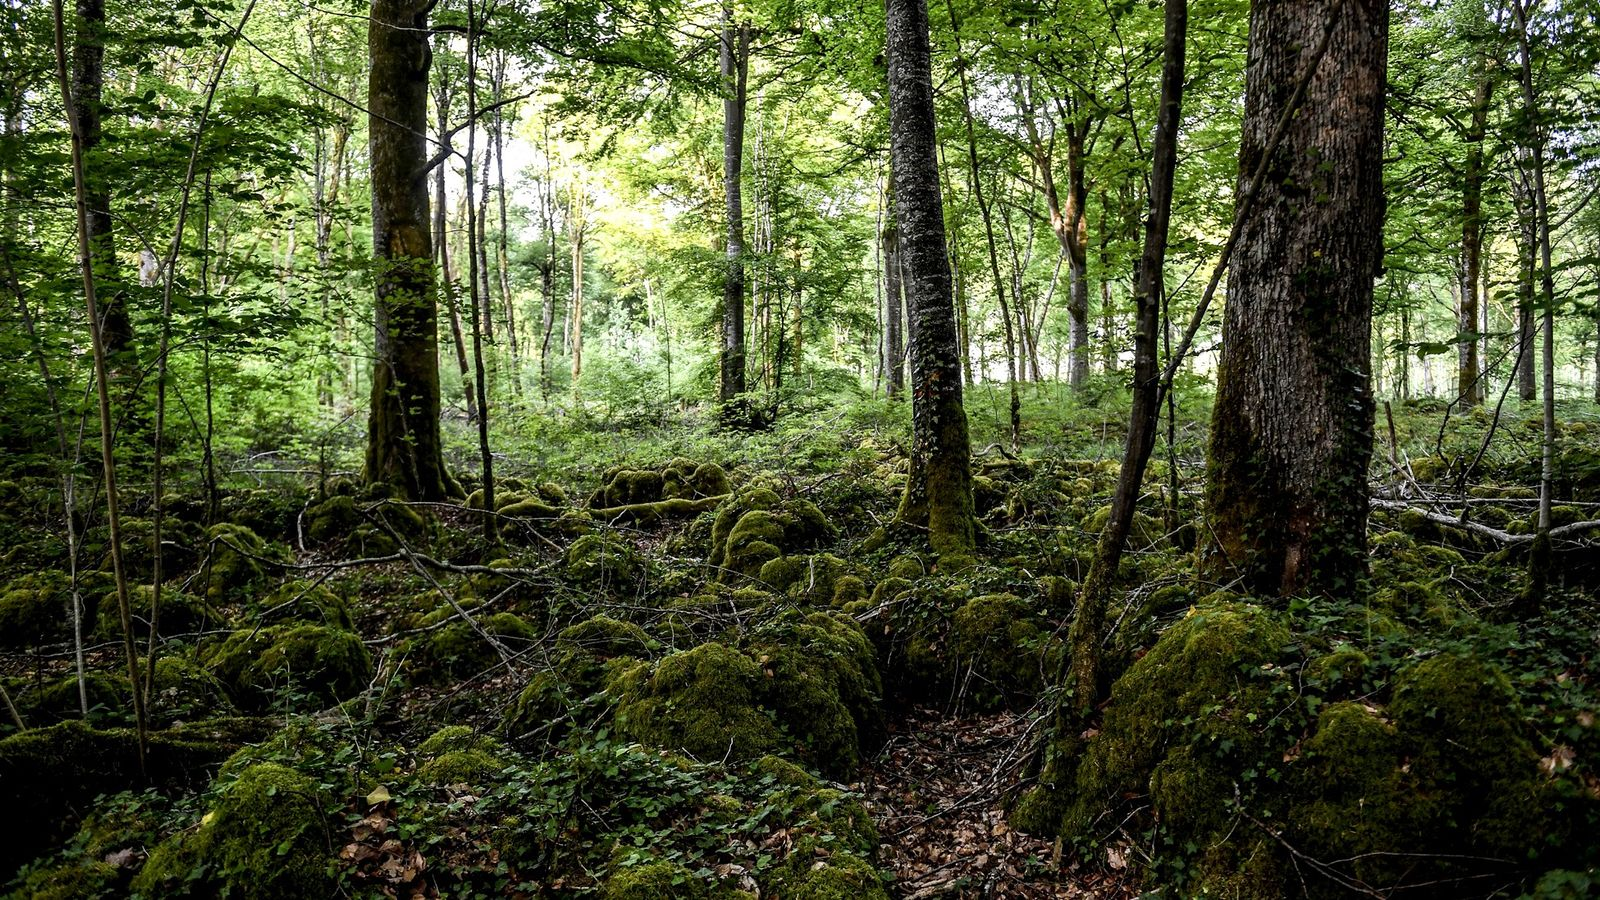 Just three hours from Paris, France's 11th national park protects a unique lowland leafy forest ecosystem.